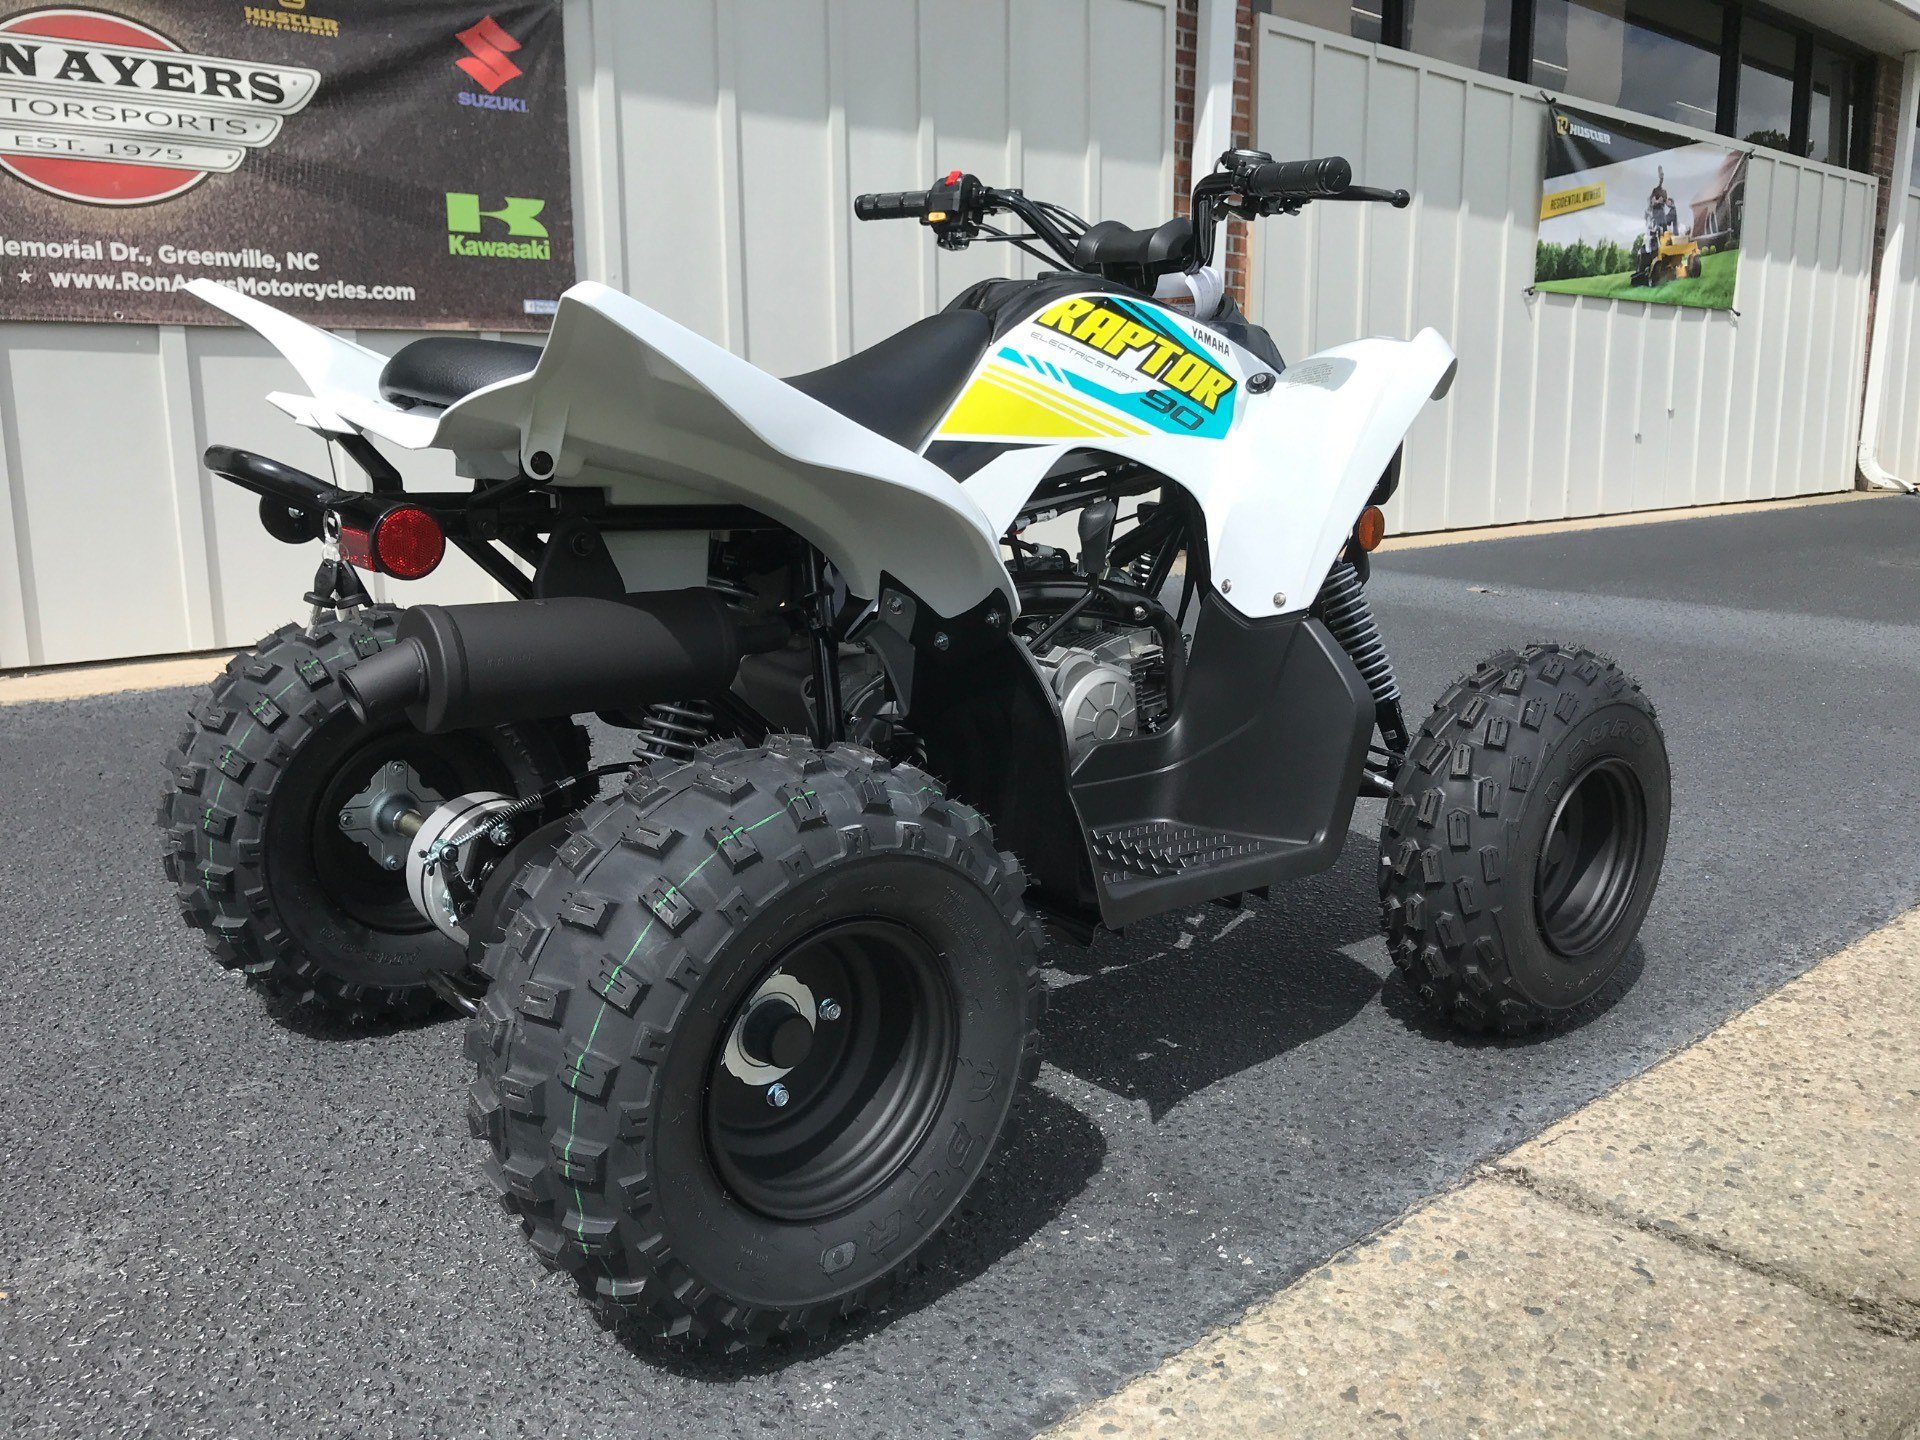 2021 Yamaha Raptor 90 in Greenville, North Carolina - Photo 8